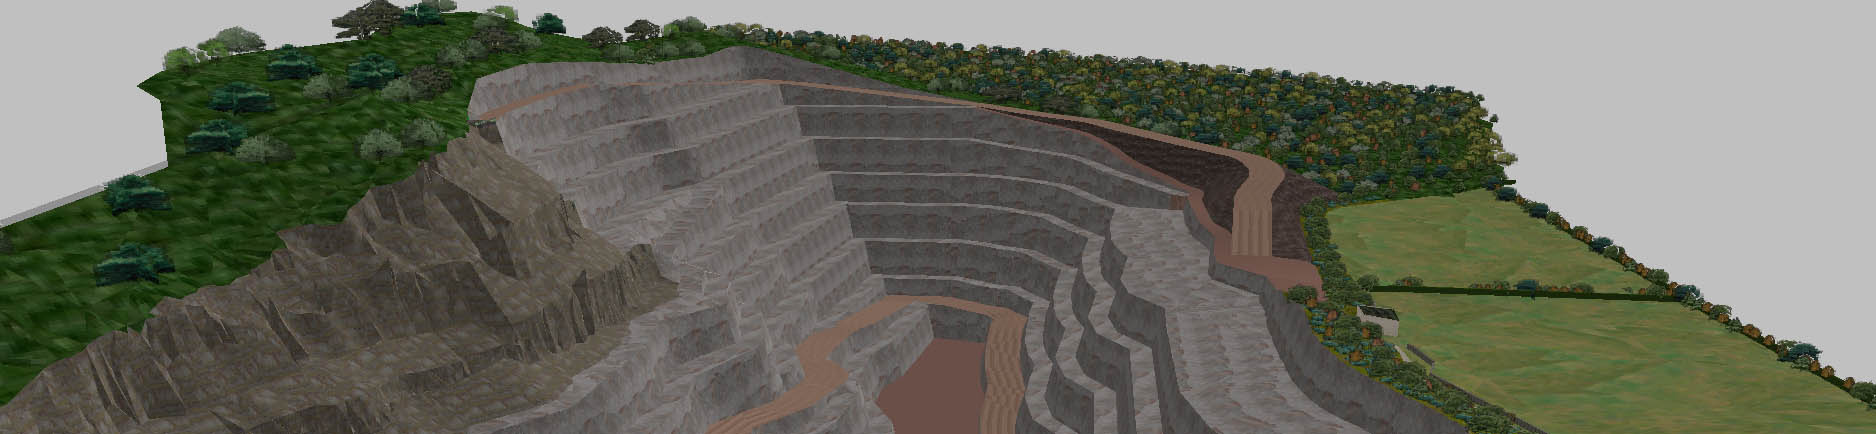 Quarry design